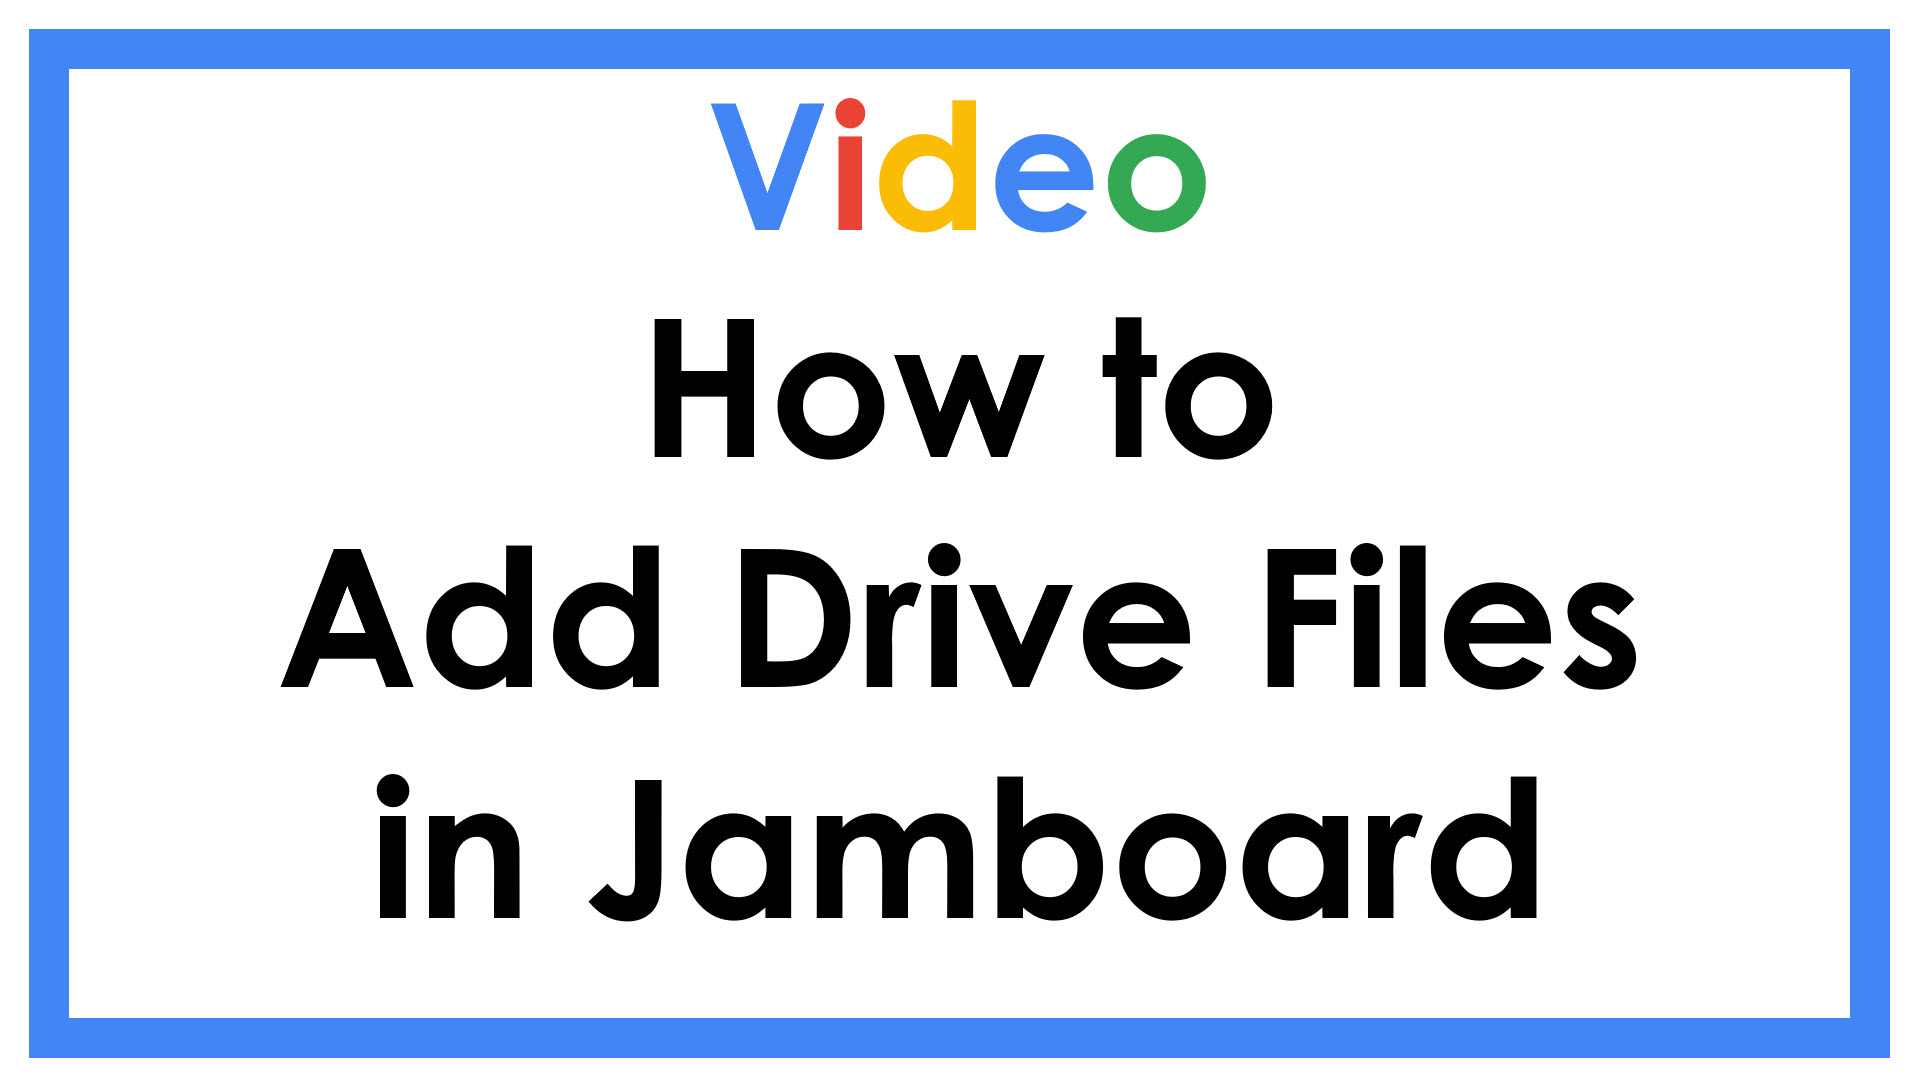 How to Add Drive Files in Jamboard